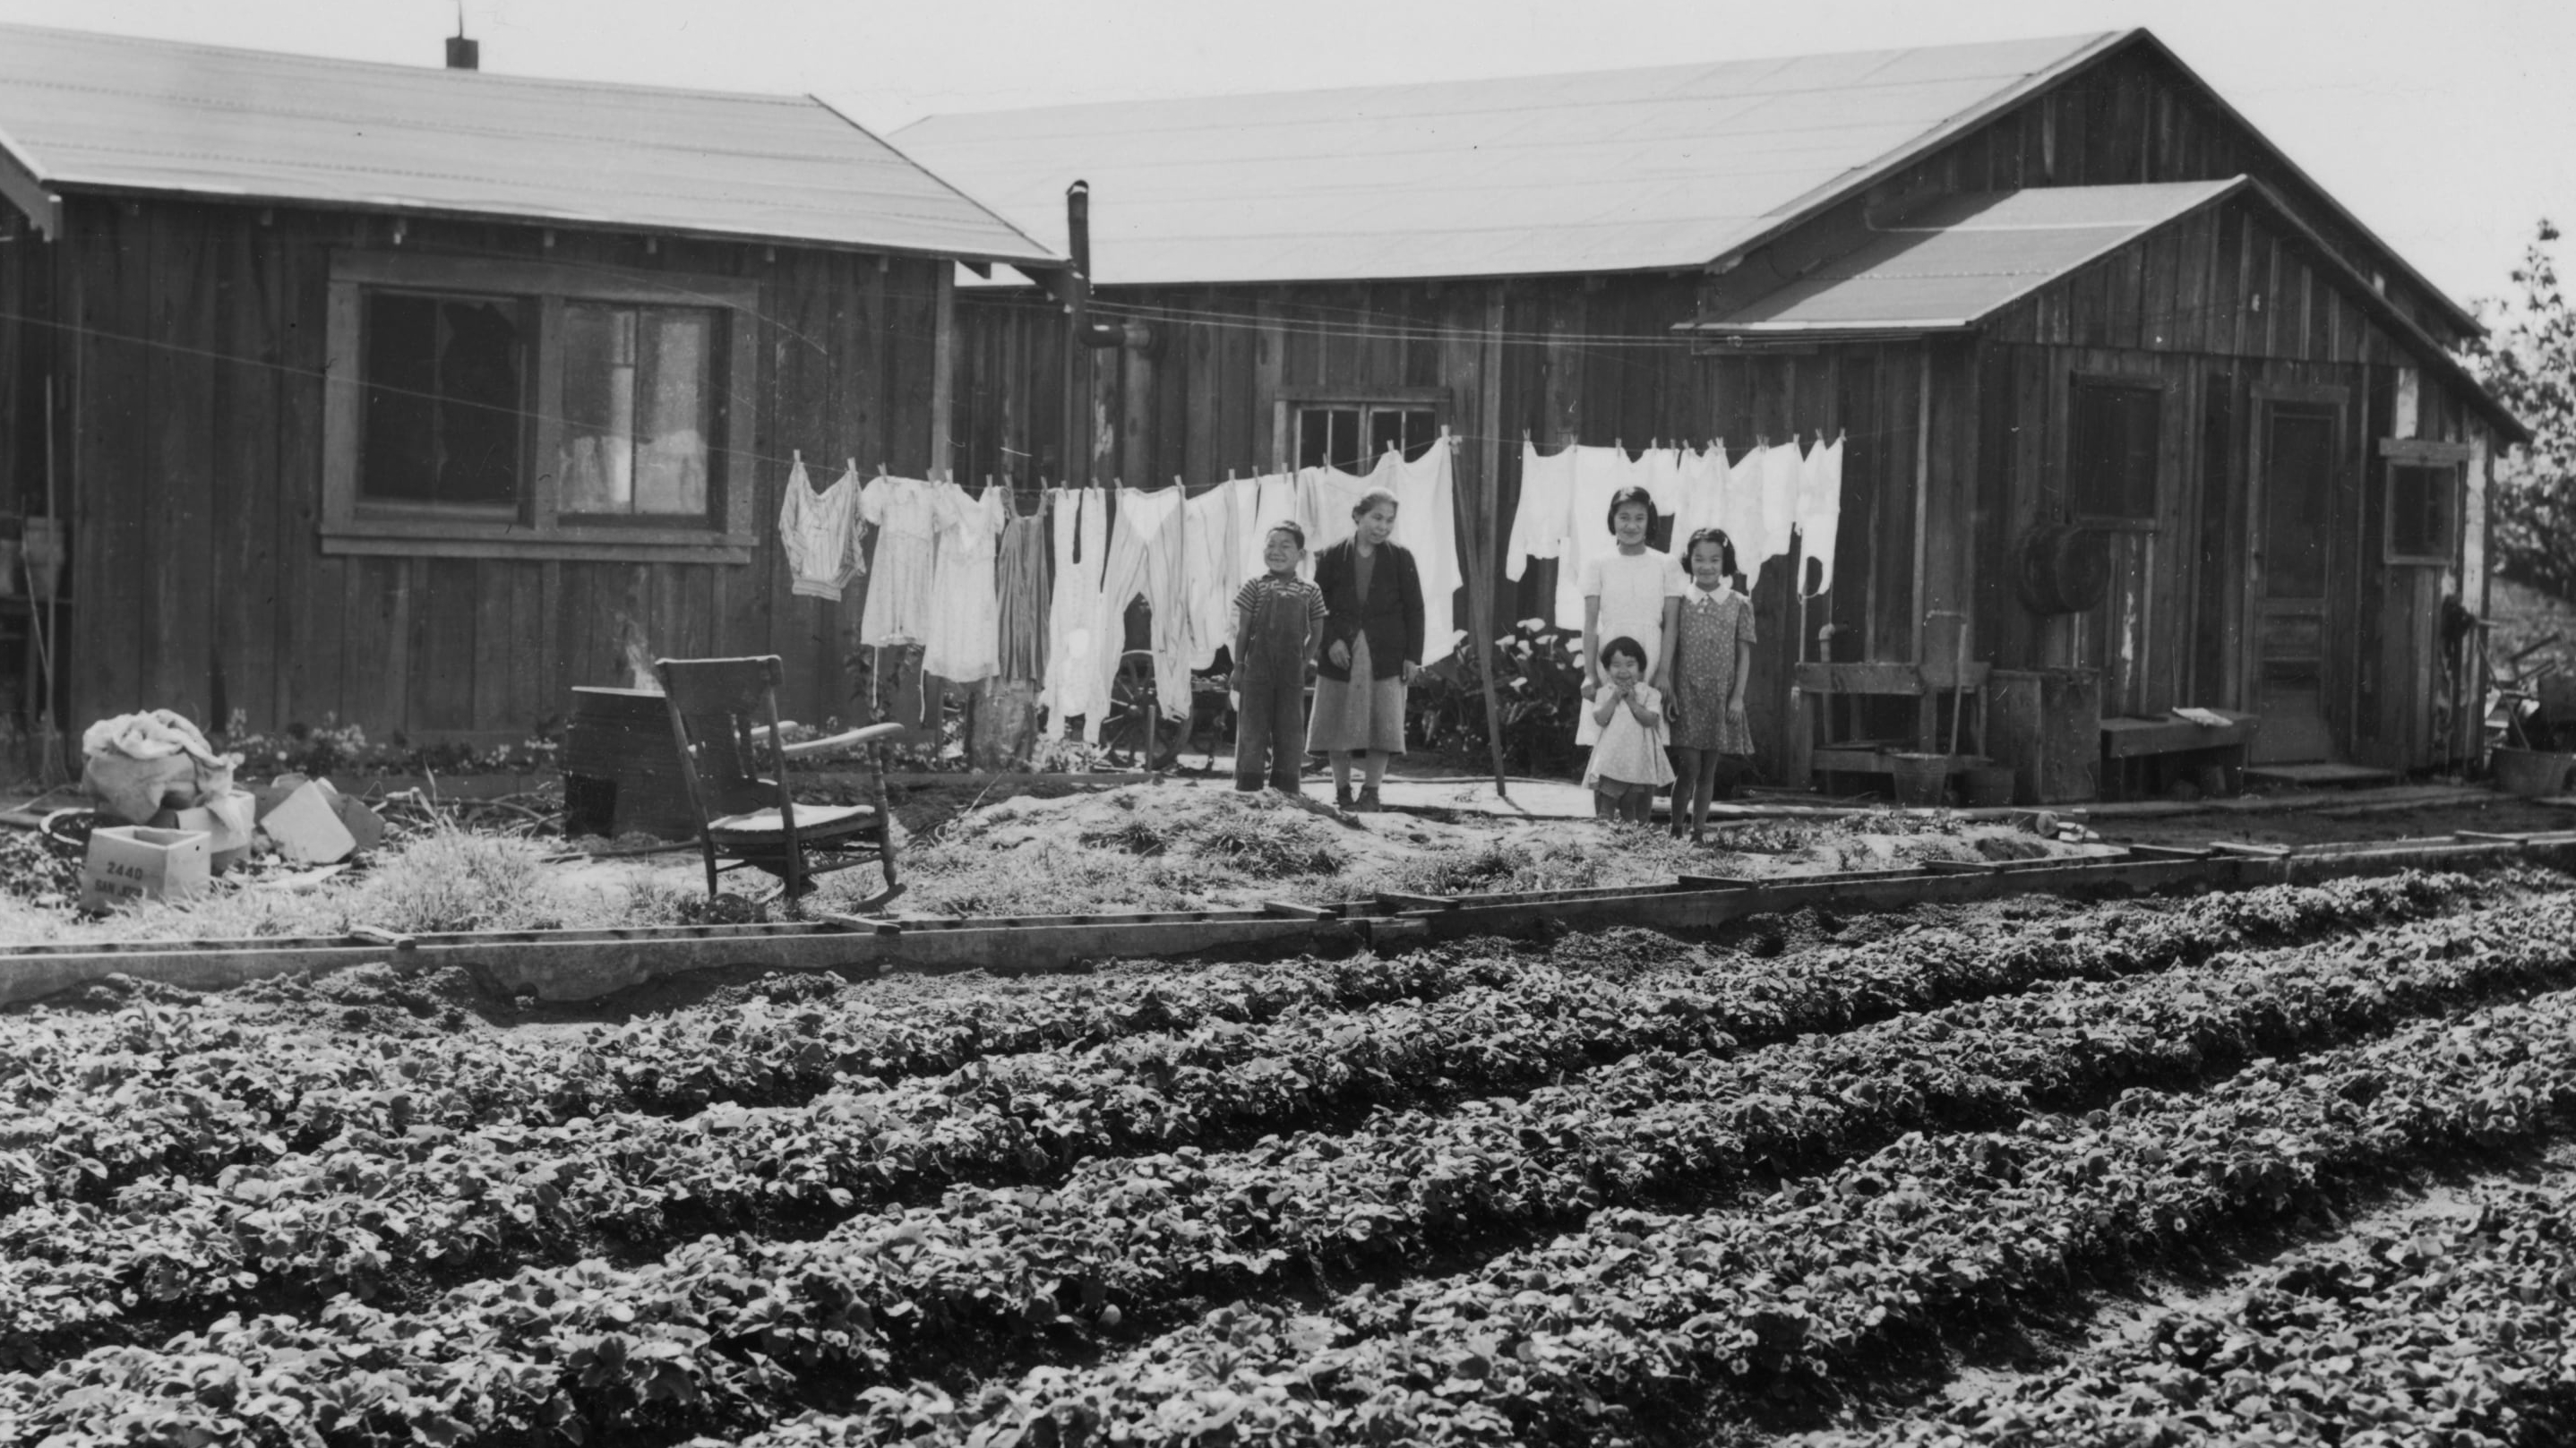 Japanese internment camps during World War II are a lesson